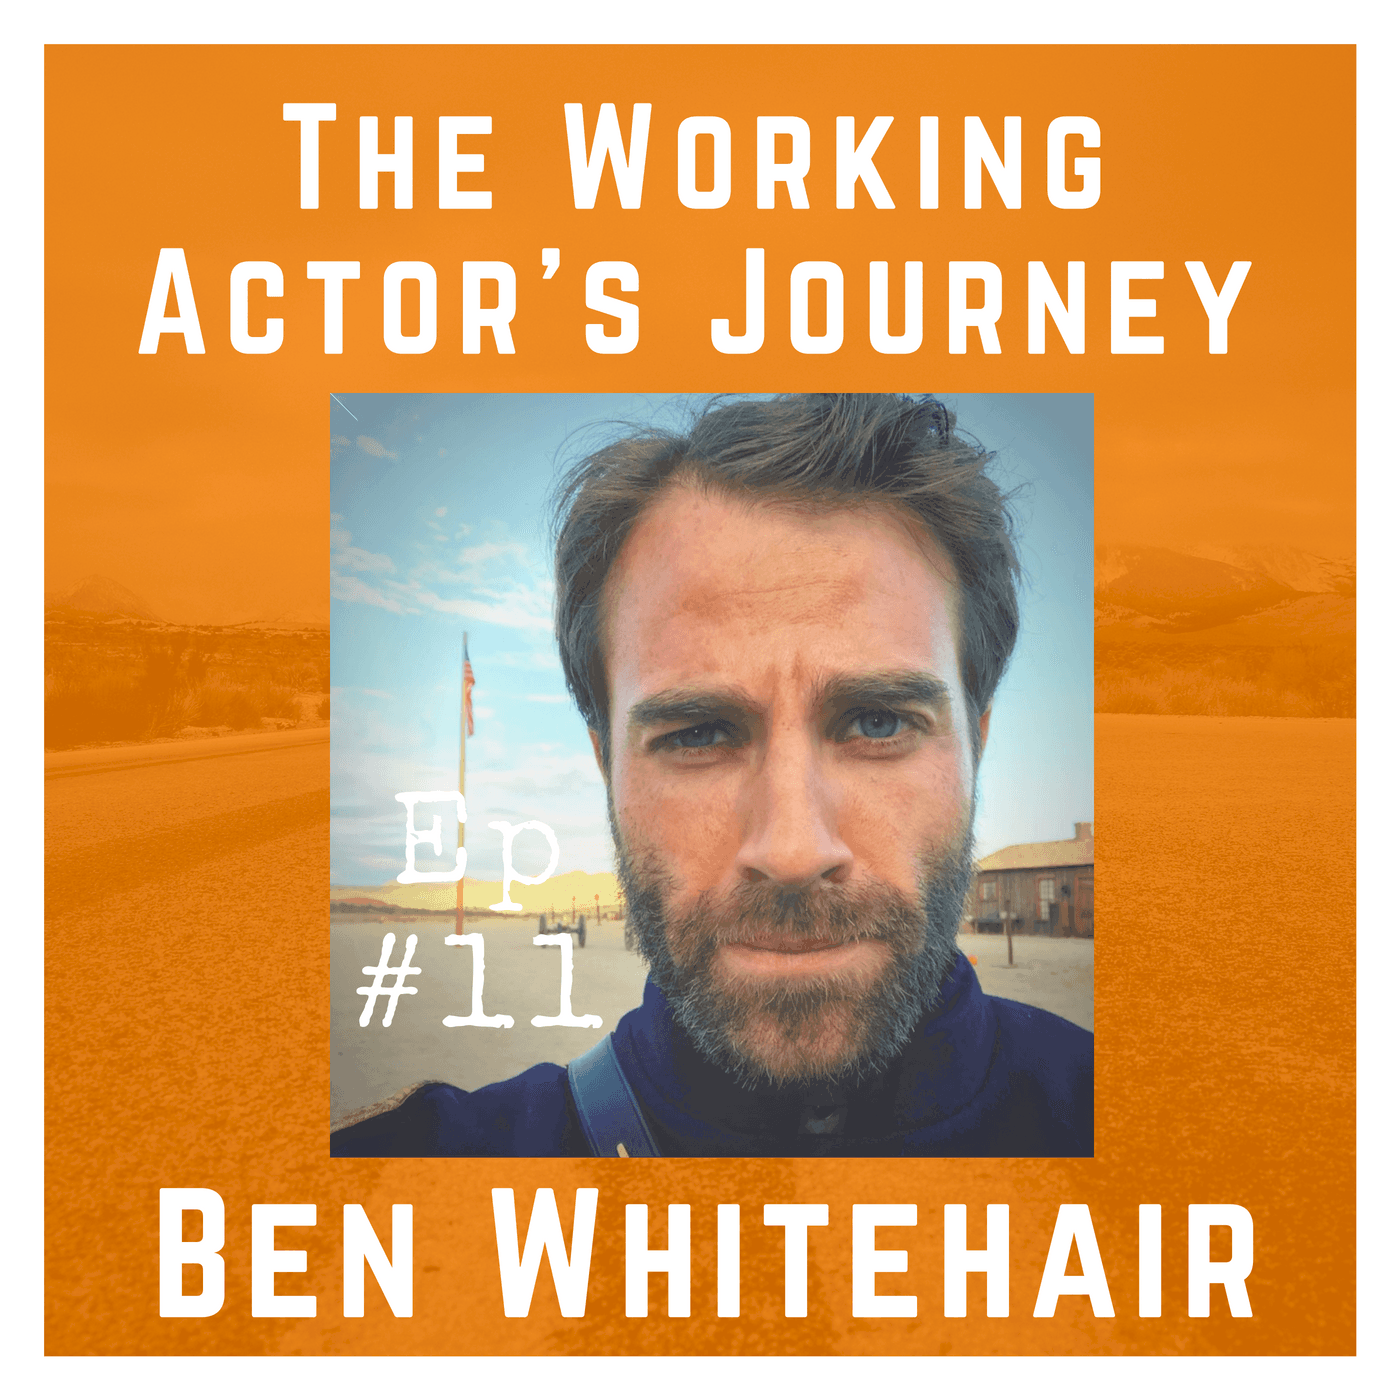 Ep 11 with Ben Whitehair